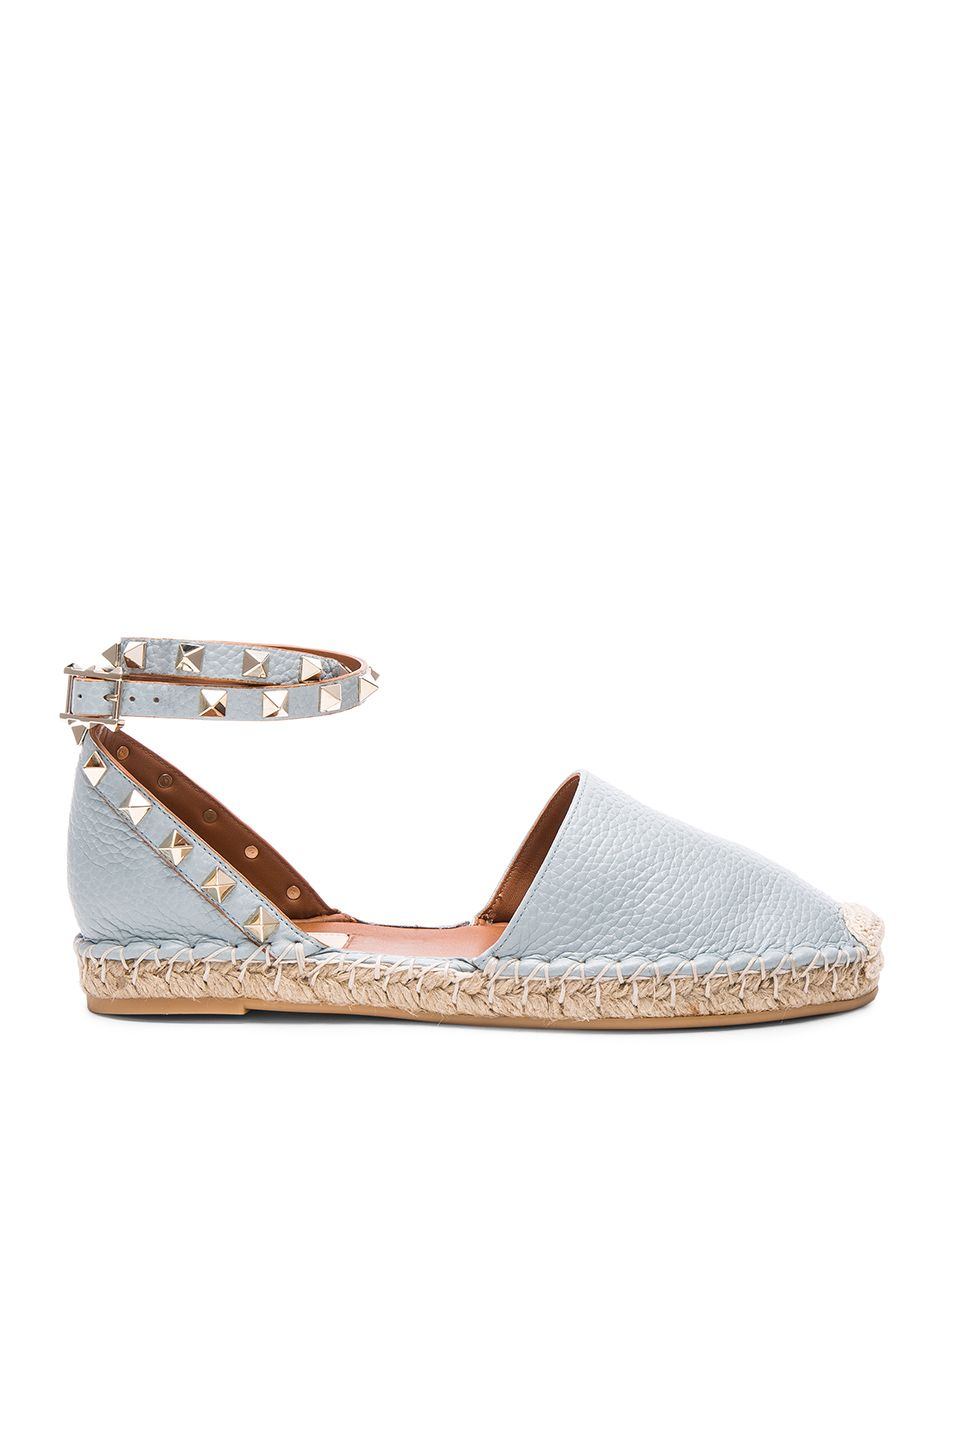 8491f5096c5 VALENTINO Rockstud Double Flat Leather Espadrilles.  valentino  shoes